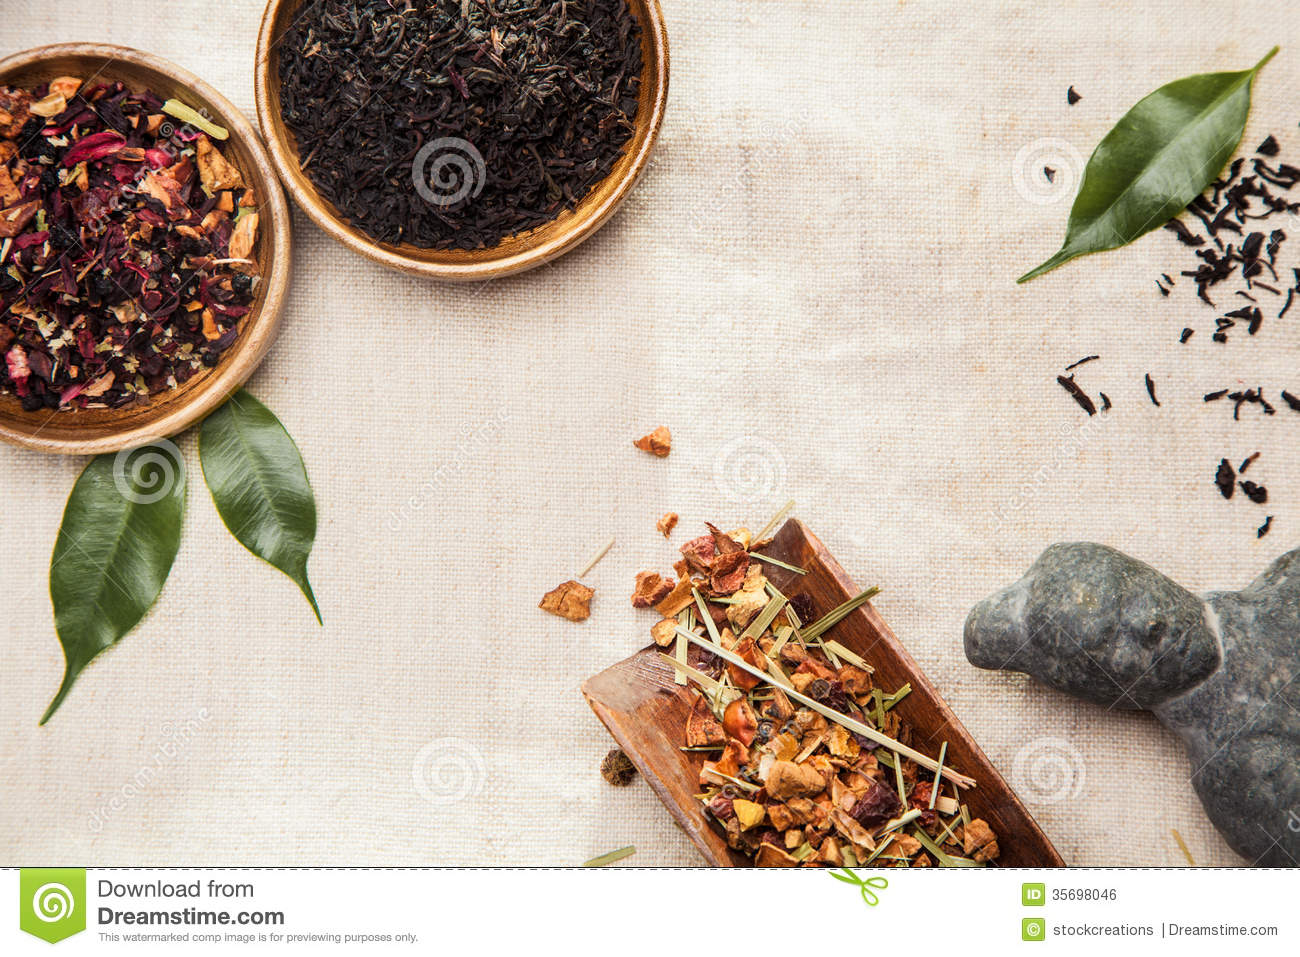 Plants symbol of traditional chinese medicine royalty